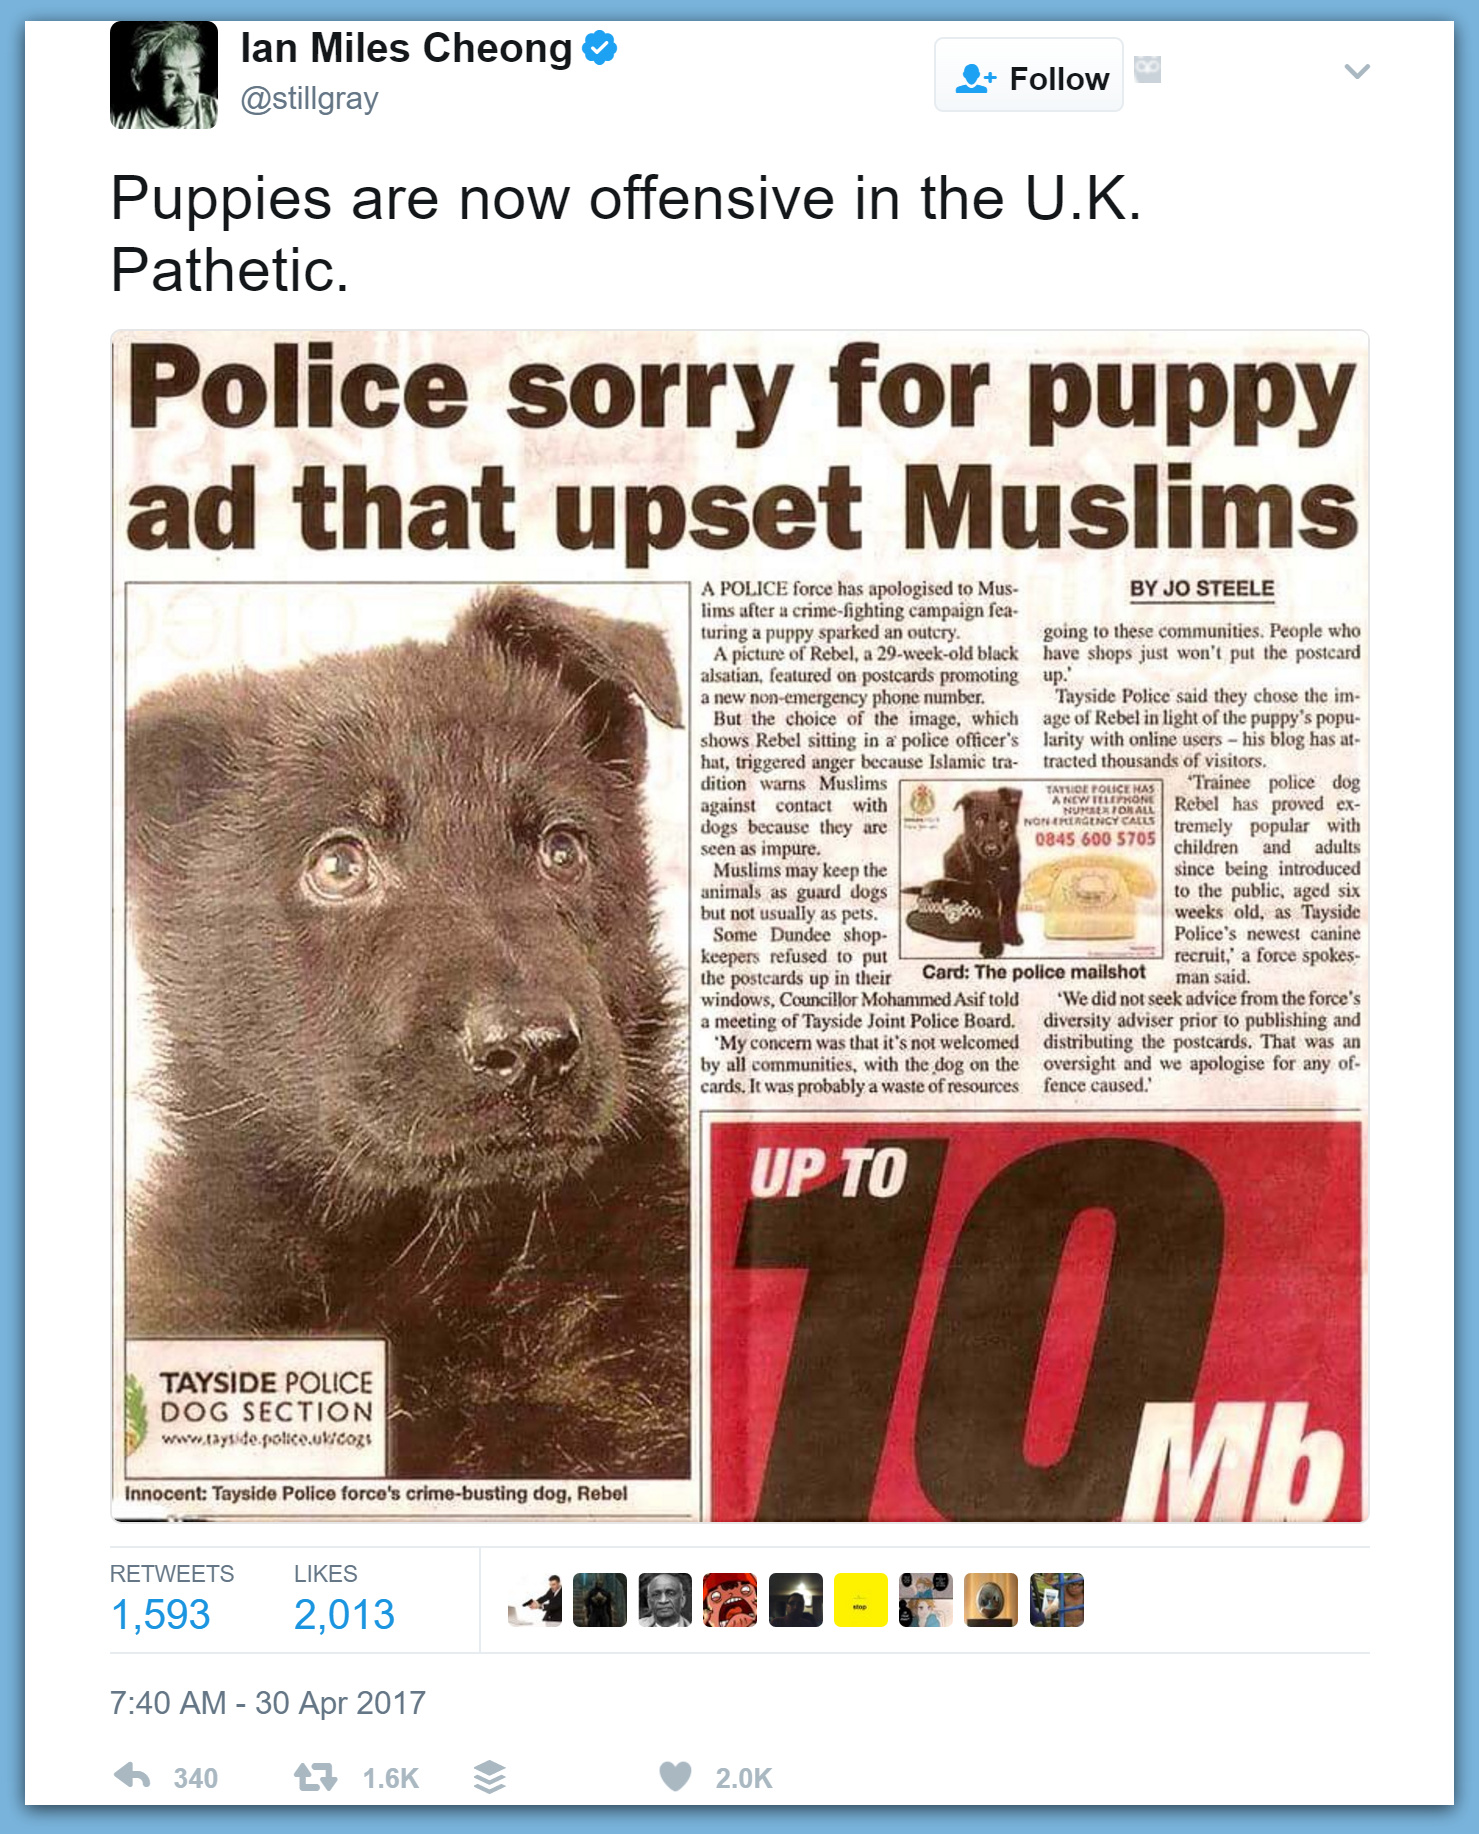 Police Apologize To Muslims For Using Puppy In Ad